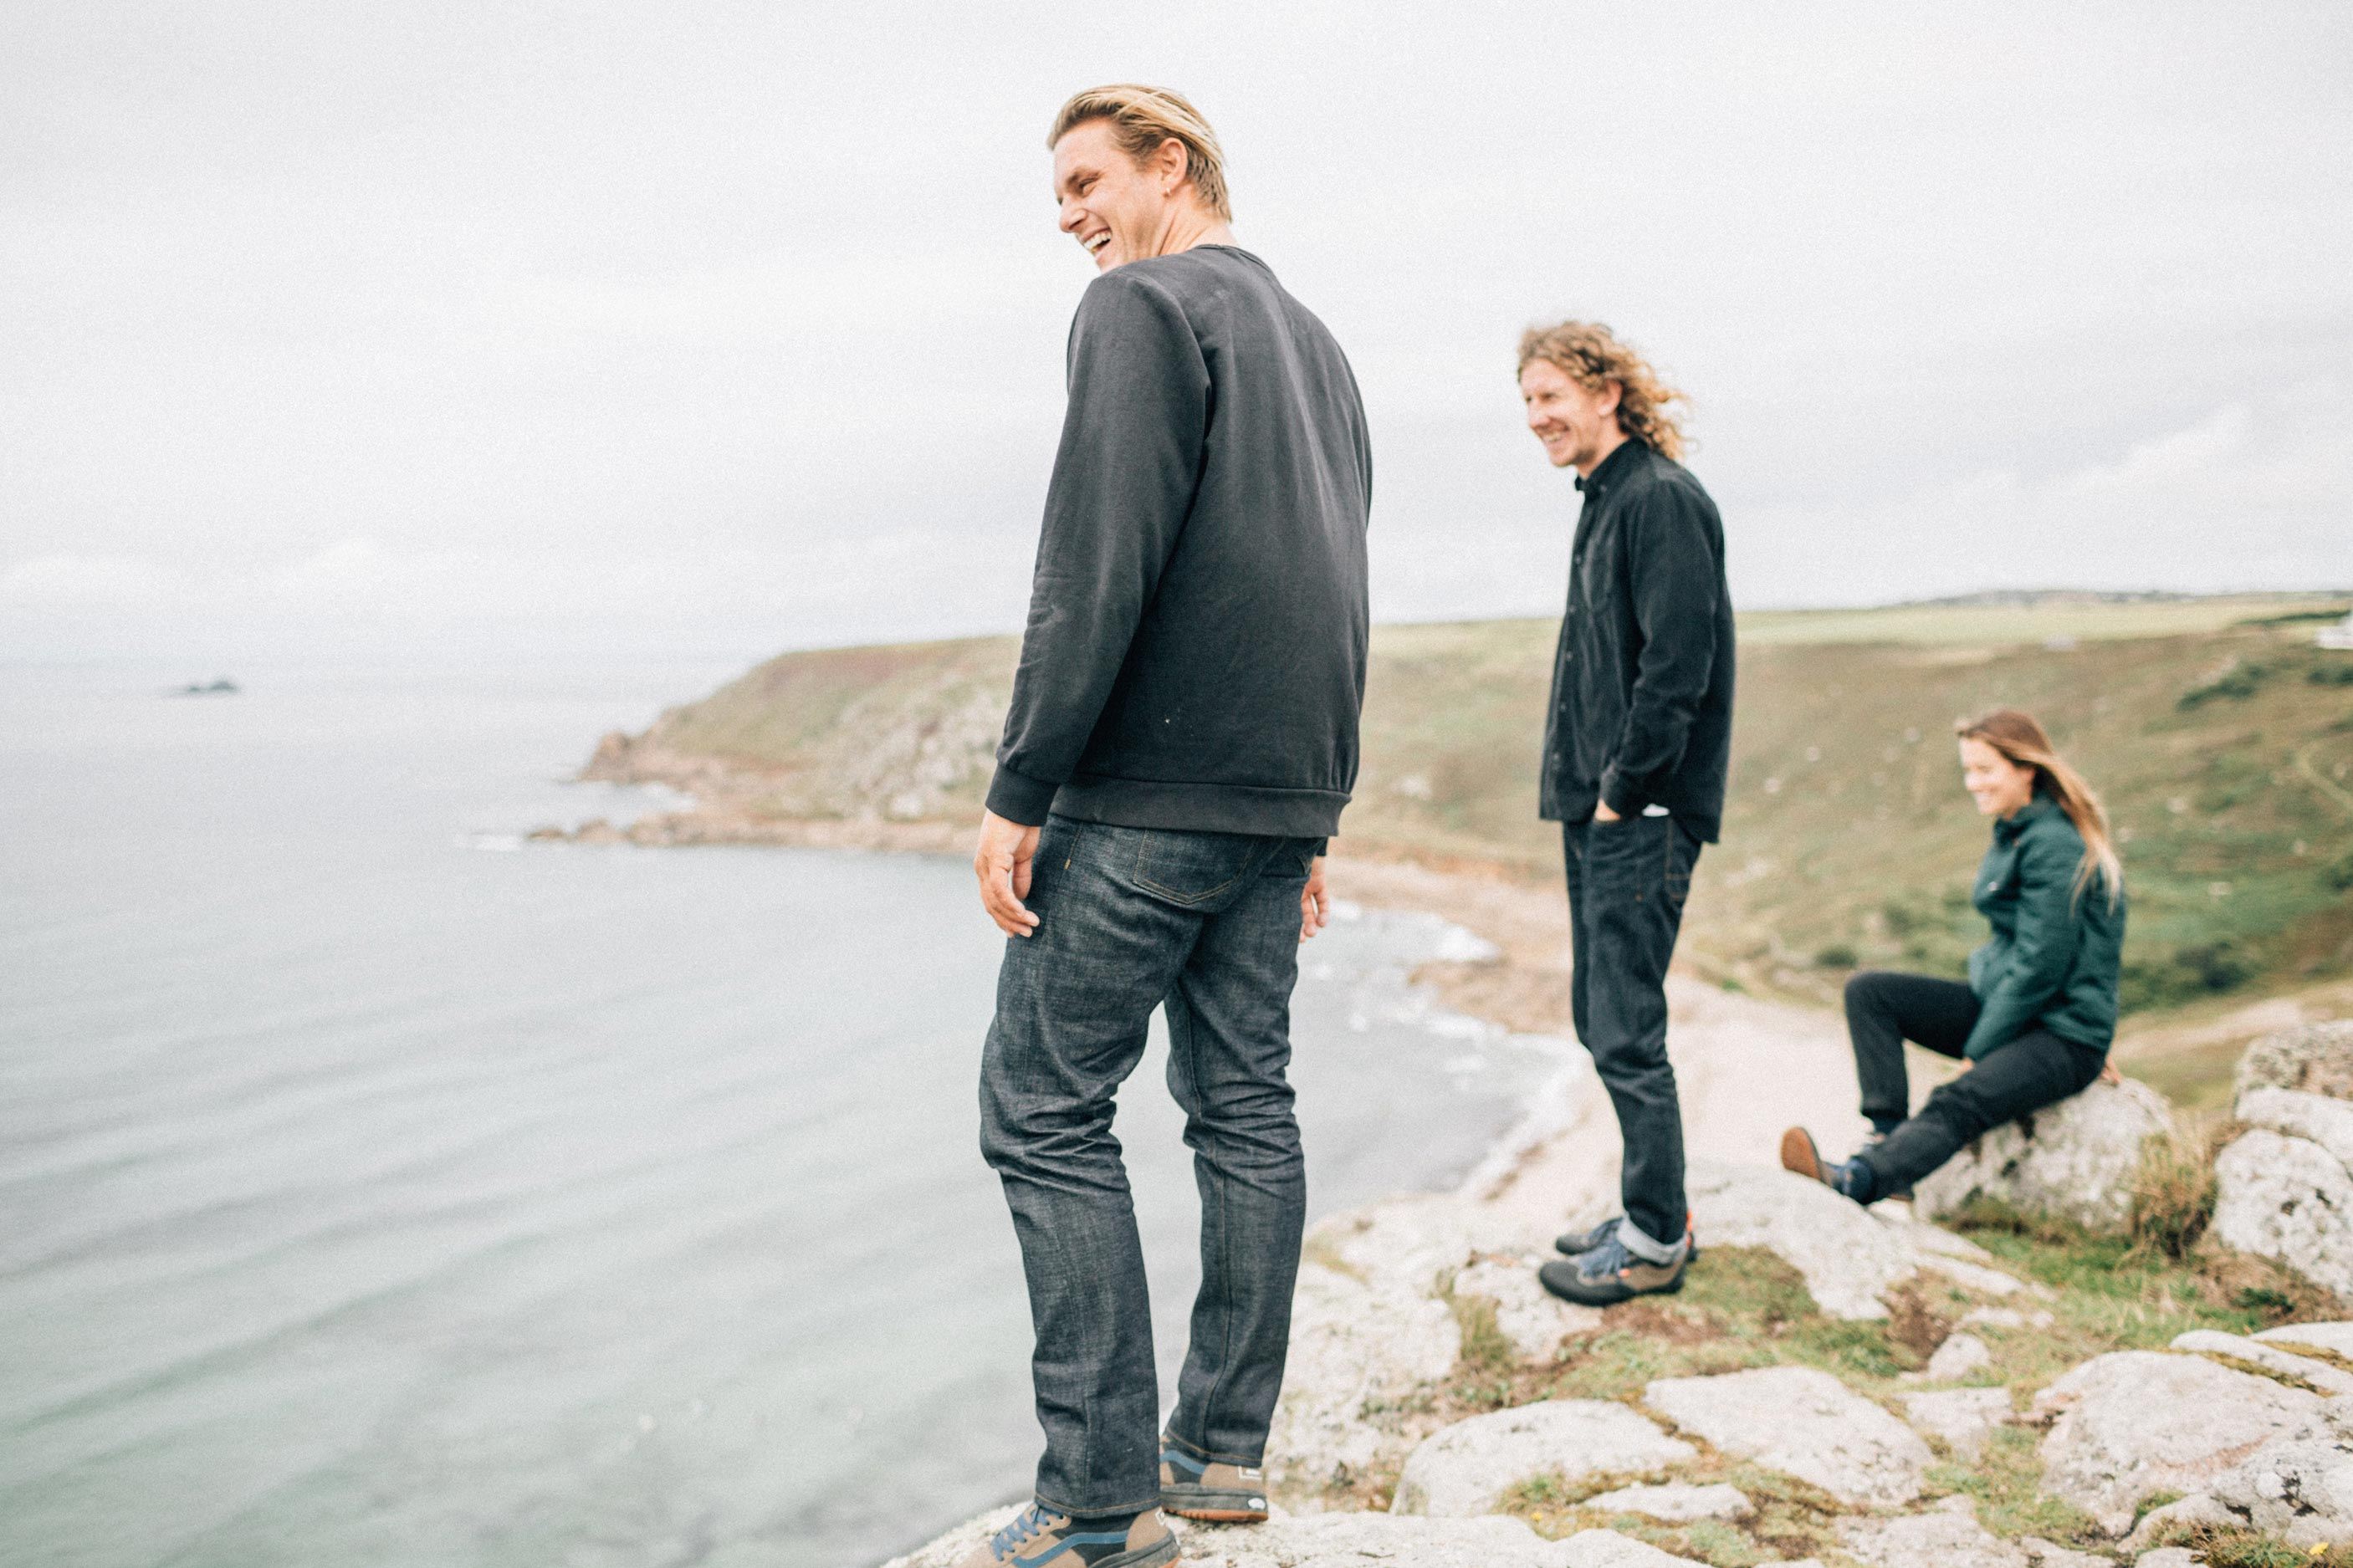 Vans + Finisterre editorial - Seb Smart, James Parry and Paige Maddison looking out over Sennen cove from the cliff-top